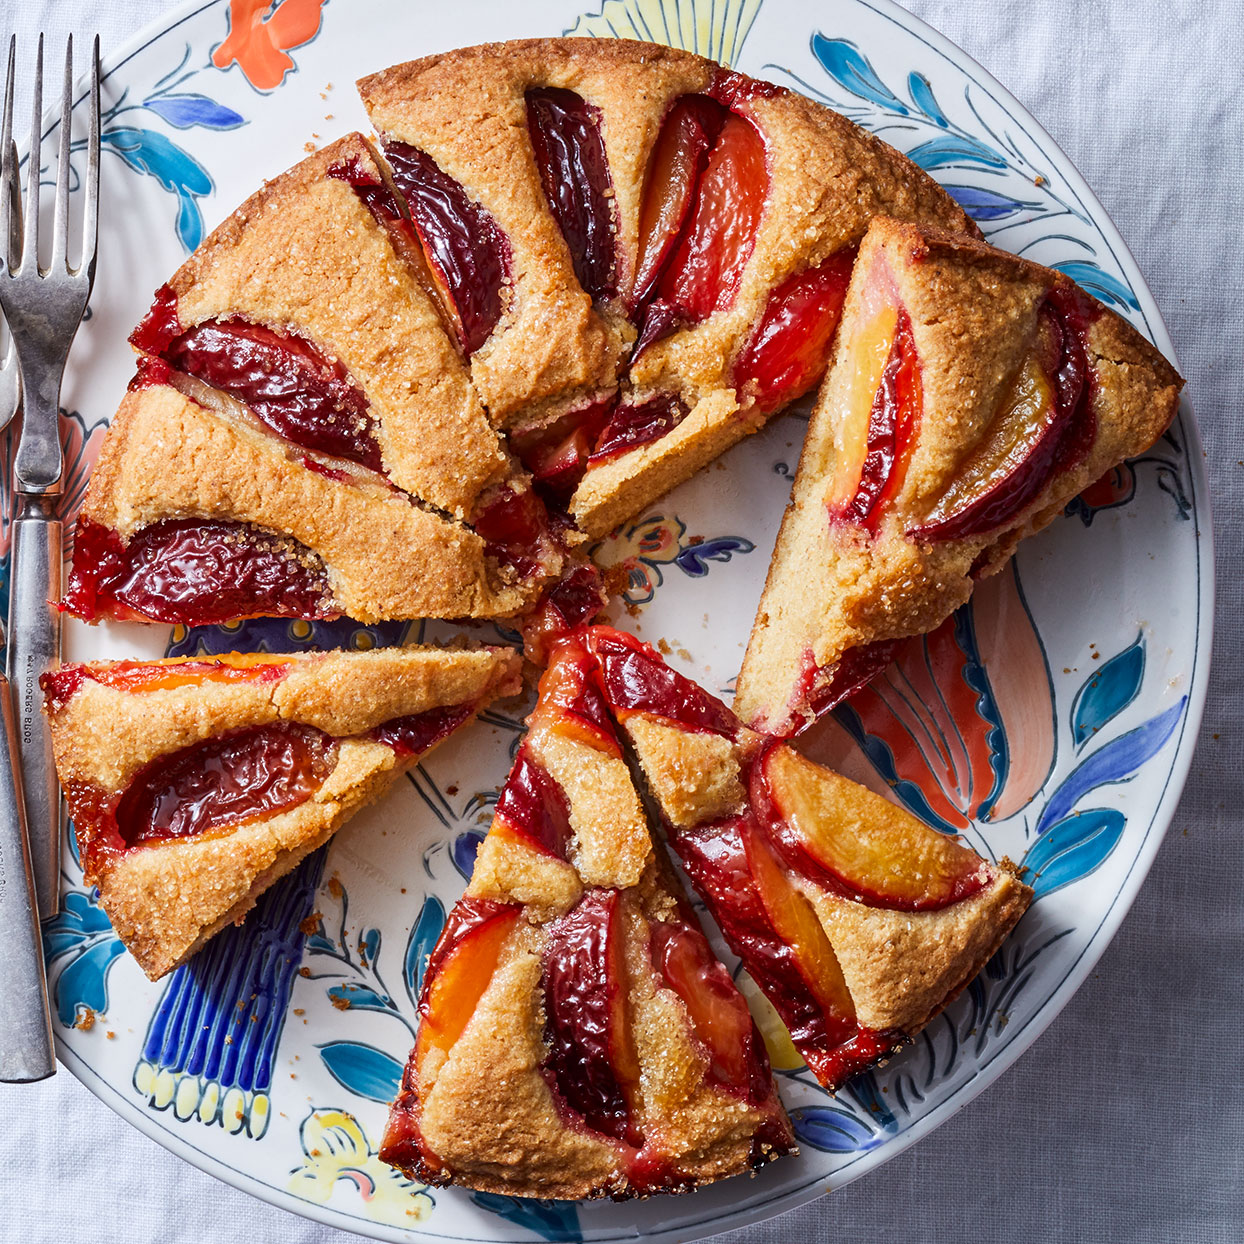 This fruit-topped cake got its name because of the way the batter buckles as it bakes. We omitted the traditional crumb topping to let this plum cake shine. Source: EatingWell Magazine, June 2020